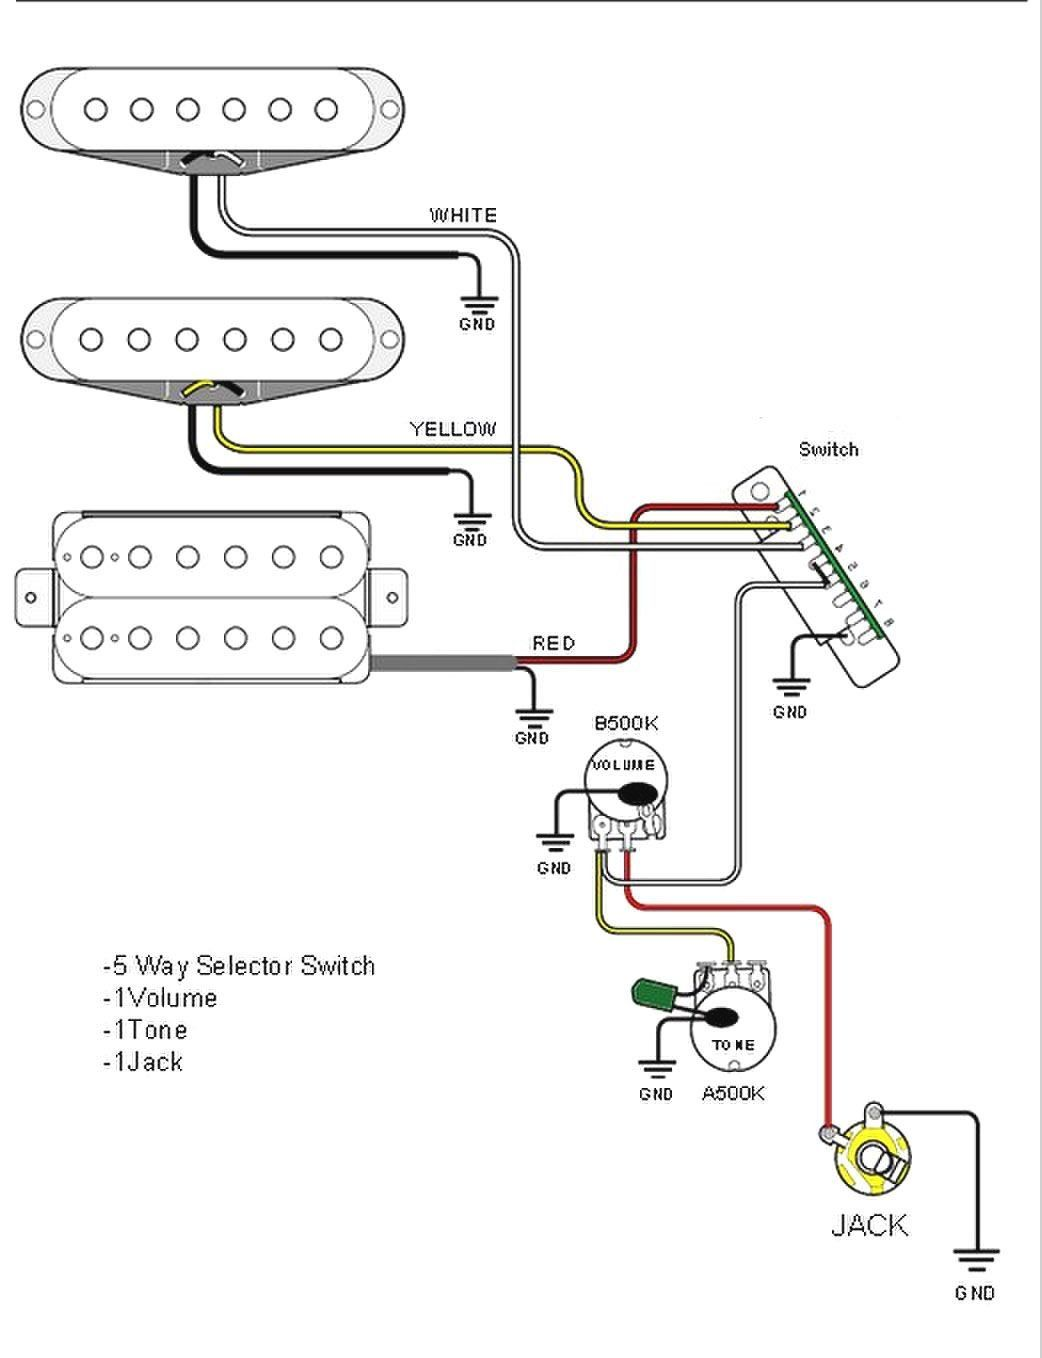 Jeff Baxter Strat Wiring Diagram Google Search Diagram Strat Guitar Fender Stratocaster Hss Stratocaster Guitar Fender Stratocaster Guitar Chords And Scales